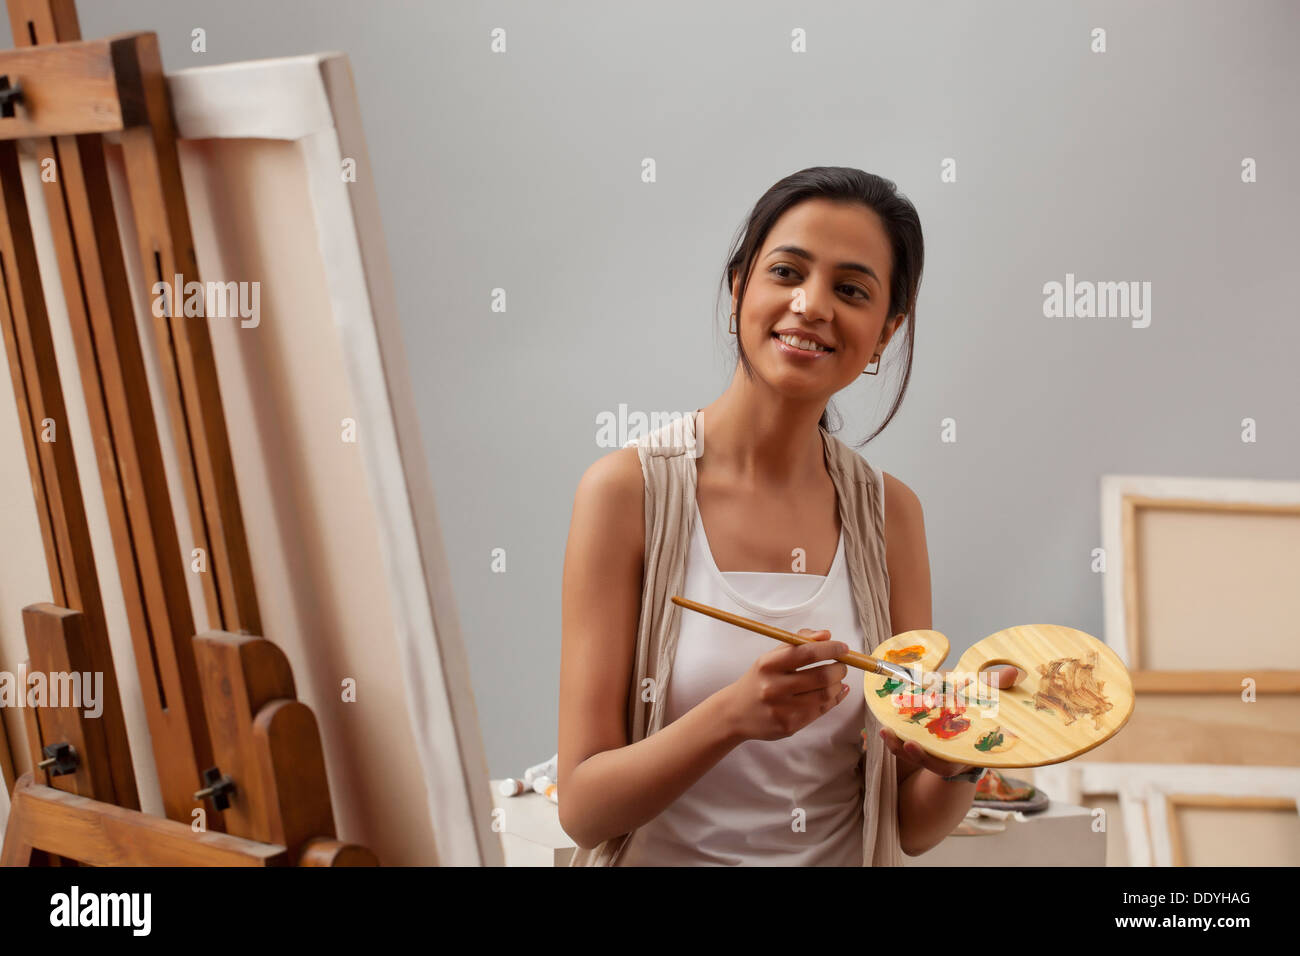 Young Female Artist Painting On Canvas Stock Photo 60227960